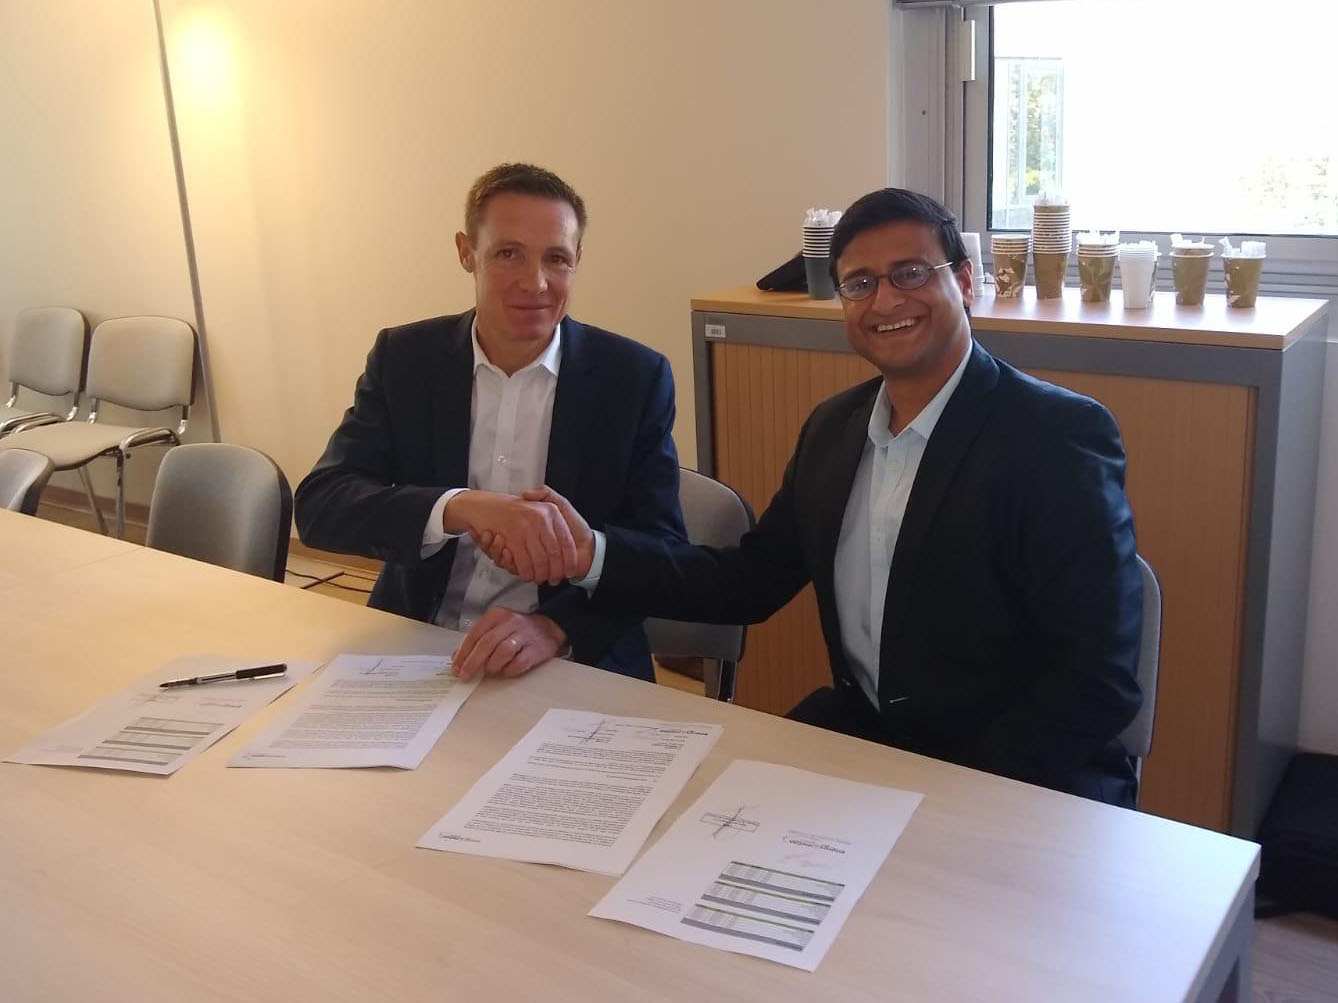 A gauche: Remi Perrin, Assistant Director of the Energy Department, CNR / à droite: Dr. Varun Gaur,  Deputy General Manager (Business Development & Partnerships), energy & meteo systems<br /> © energy & meteo systems GmbH